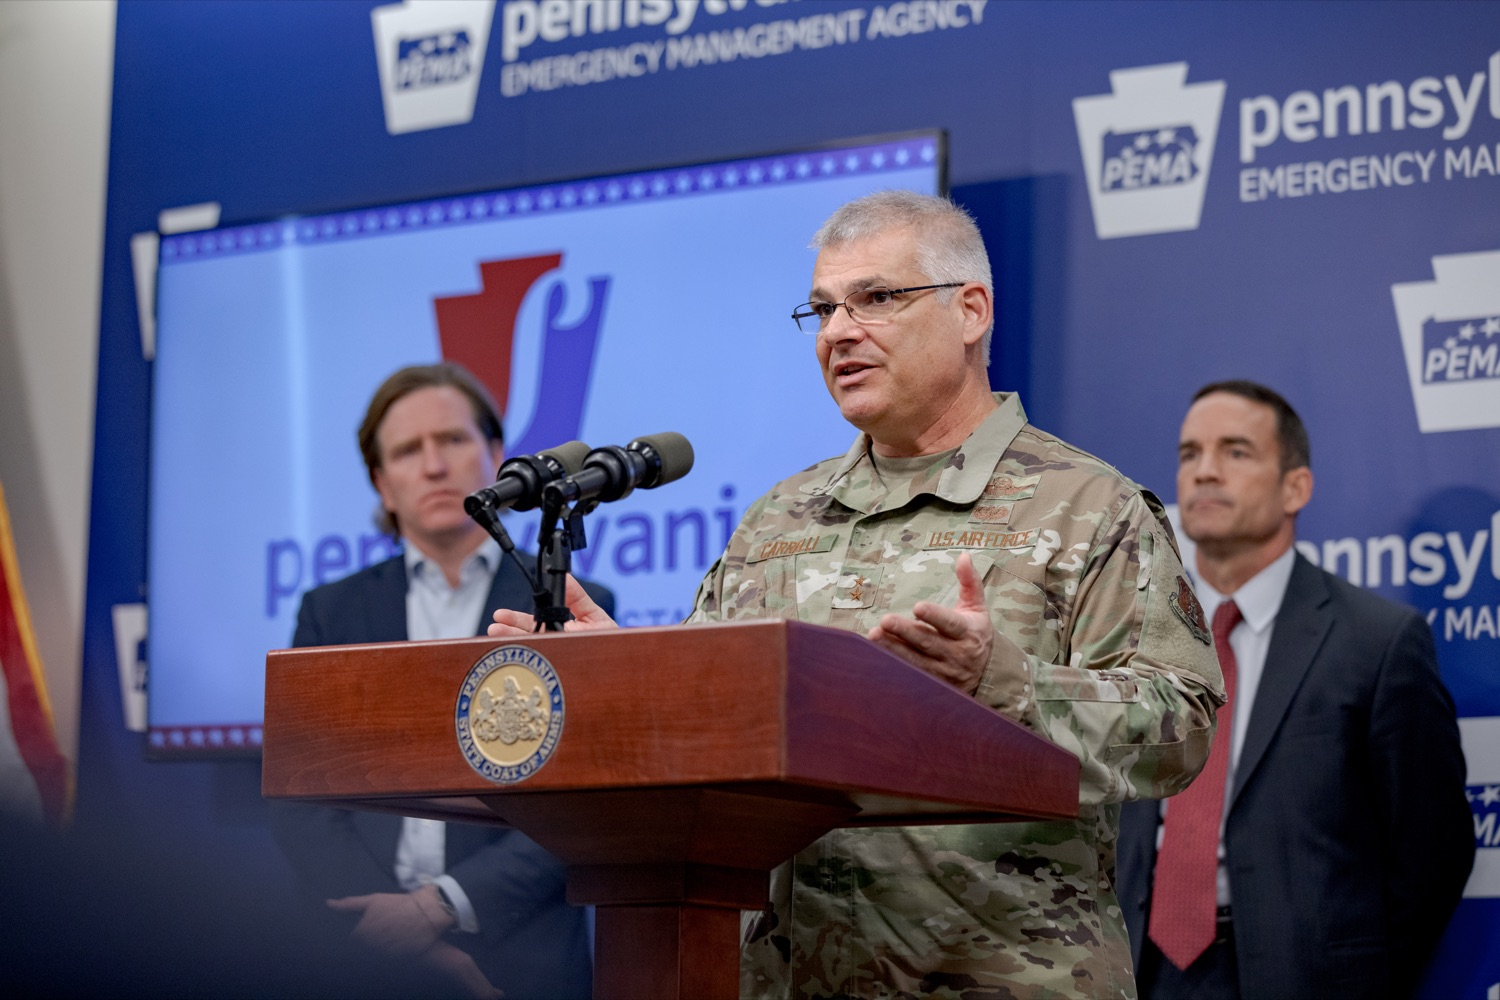 "<a href=""http://filesource.abacast.com/commonwealthofpa/photo/17558_DOS_Election_Update_NK_006.JPG"" target=""_blank"">⇣ Download Photo<br></a>Major General Anthony Carrelli, Adjutant General of the PA National Guard, speaks during a press conference assuring Pennsylvanians that a sophisticated network of federal, state and local partnerships is safeguarding todays municipal election, inside PEMA headquarters on Tuesday, November 5, 2019."